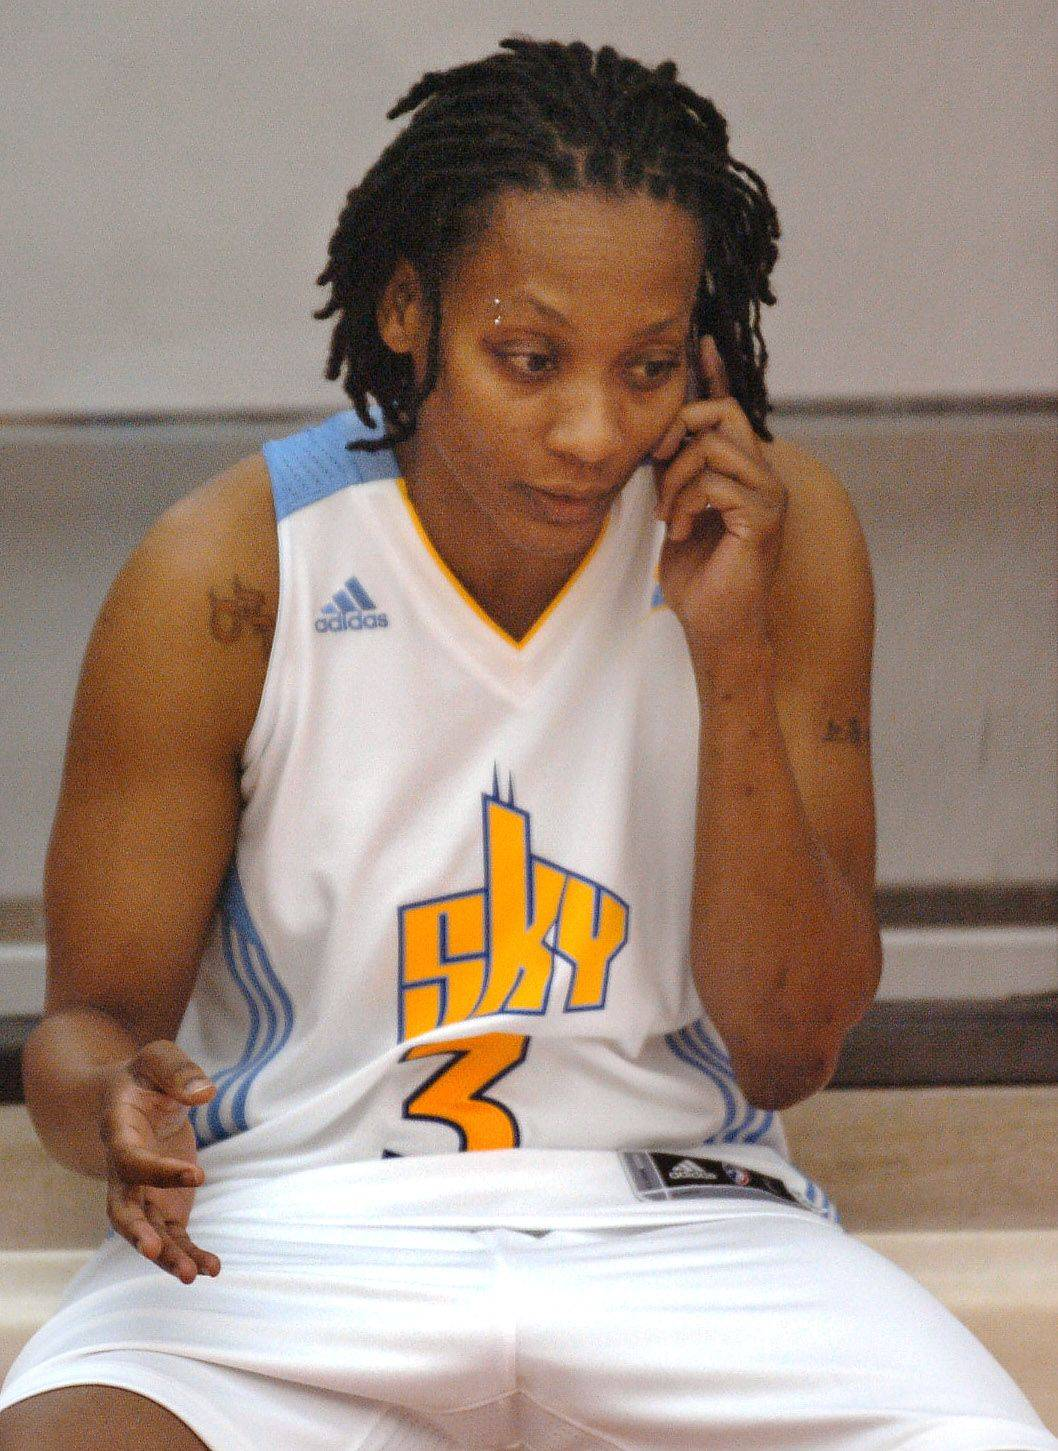 Sky veteran guard Dominique Canty on the phone during media day for Chicago Sky.